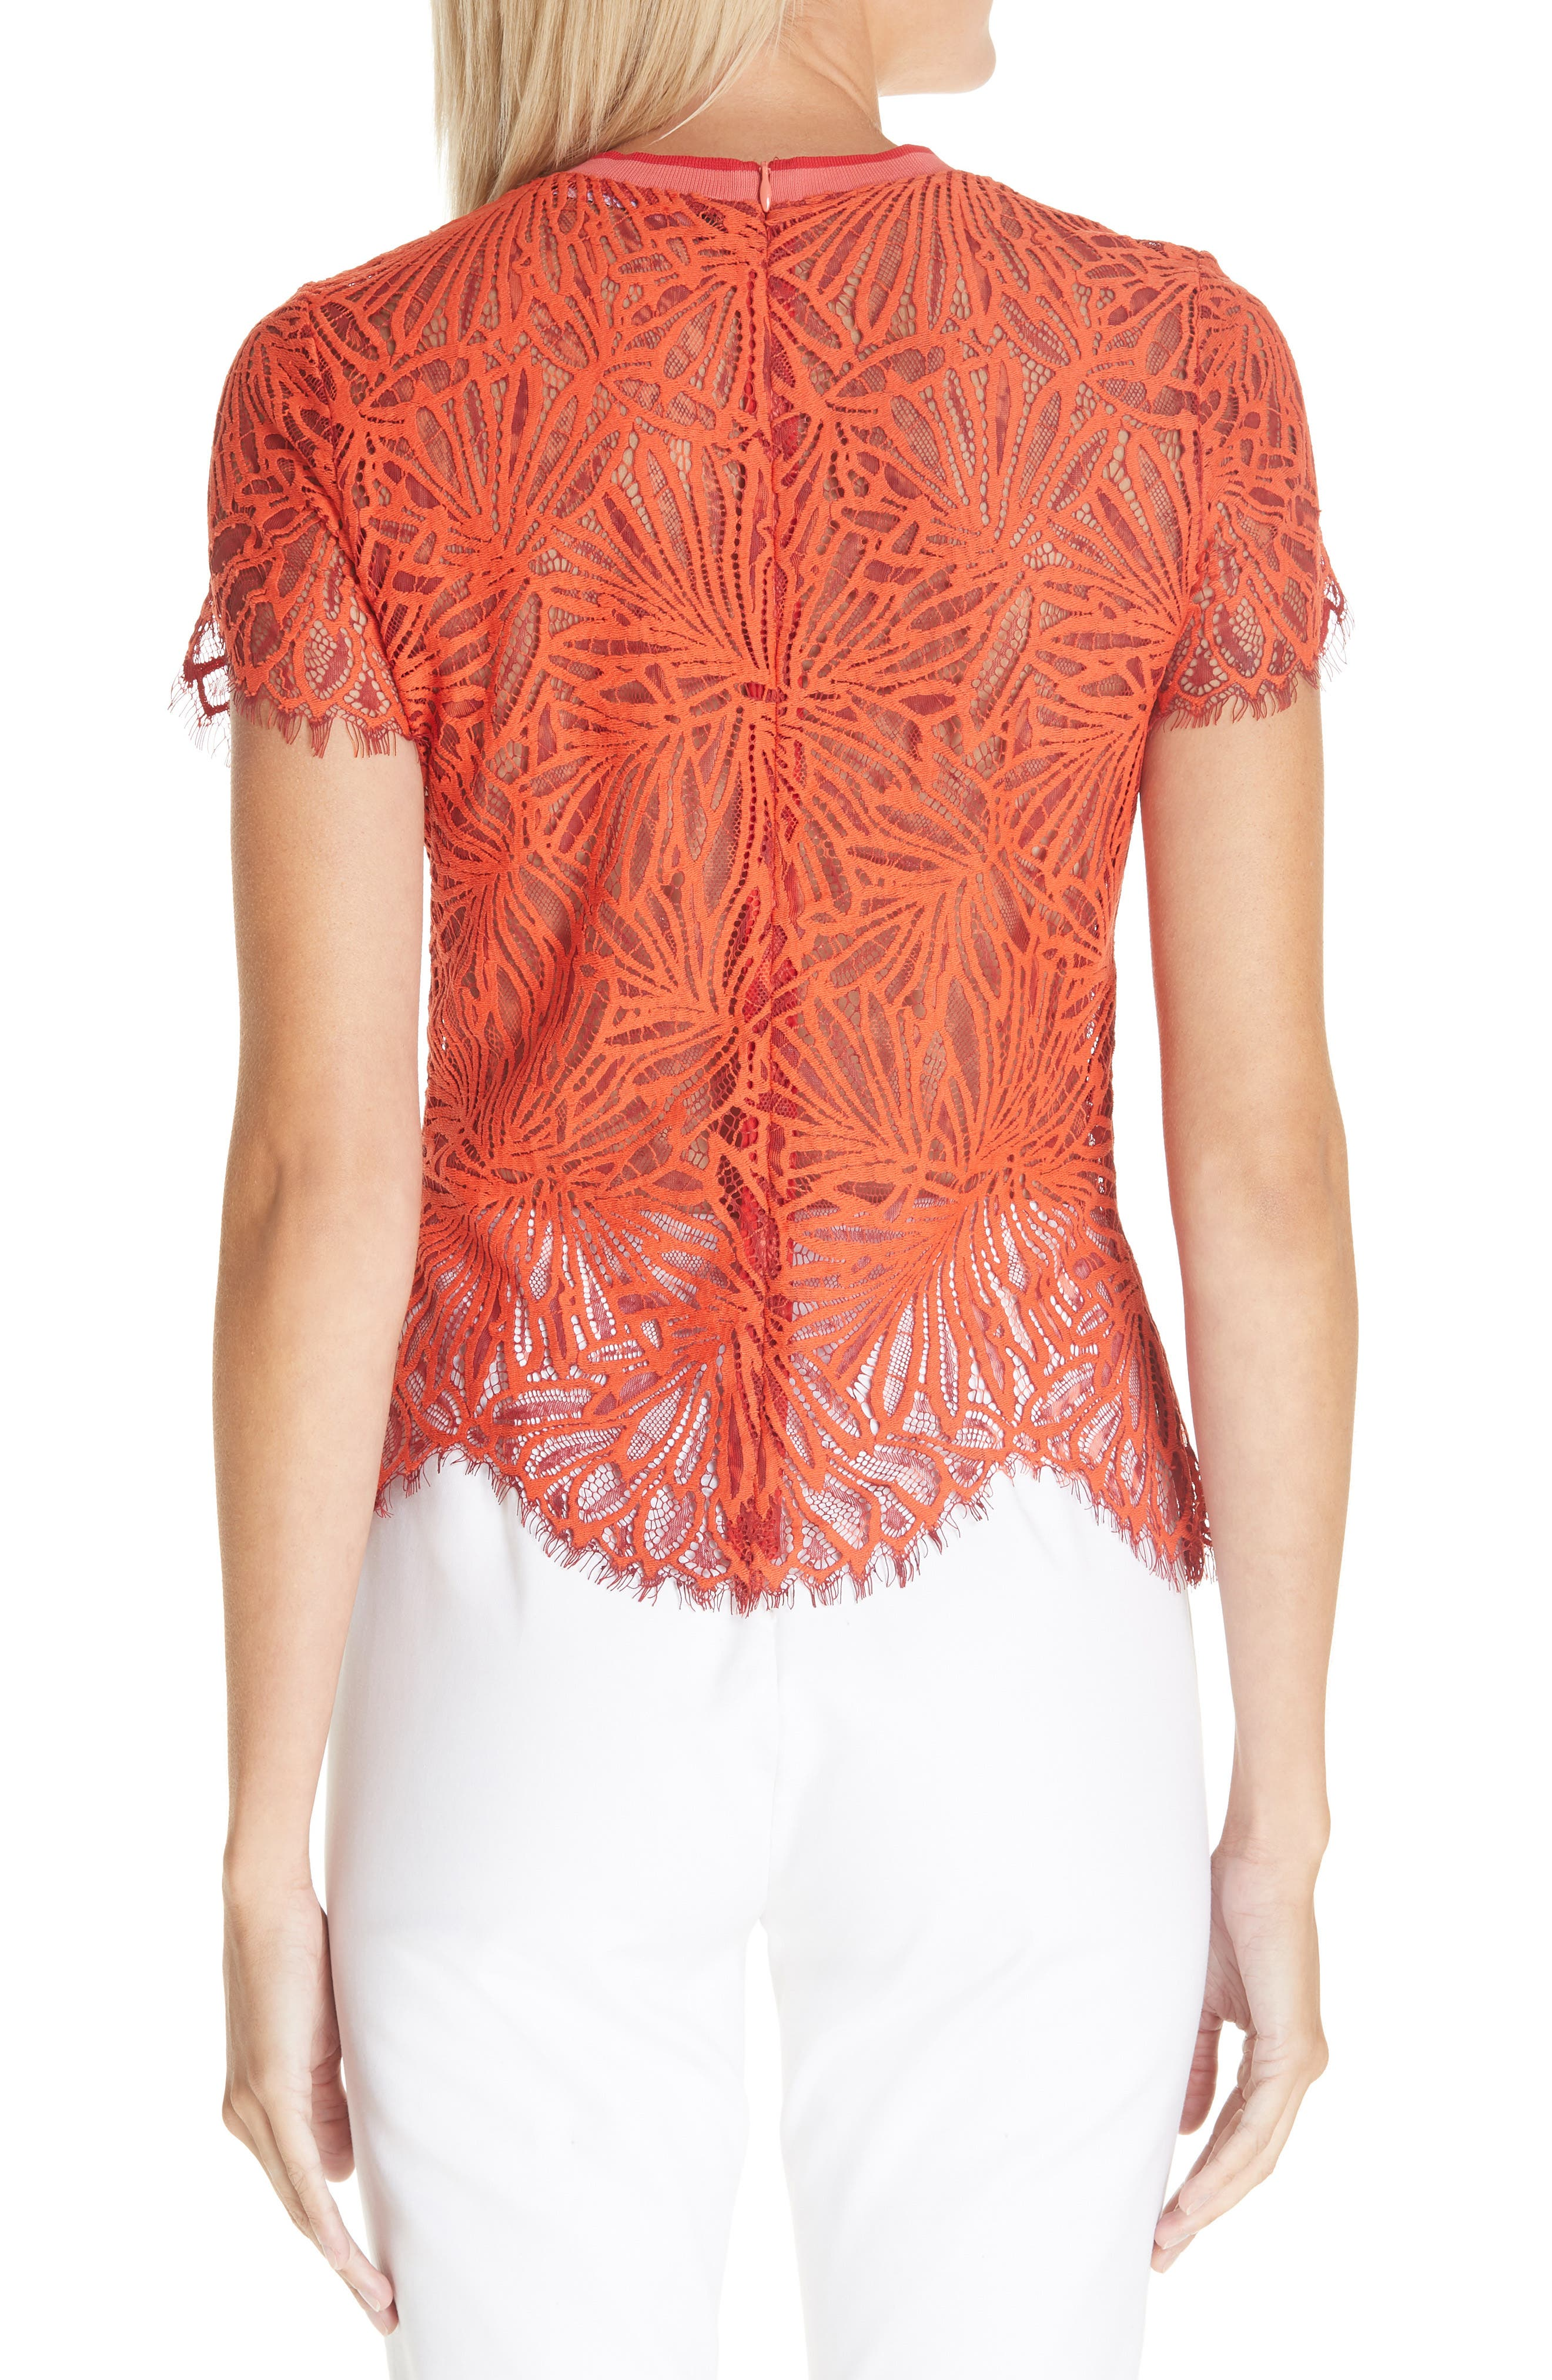 PROENZA SCHOULER,                             Scalloped Stretch Lace Top,                             Alternate thumbnail 2, color,                             TANGERINE